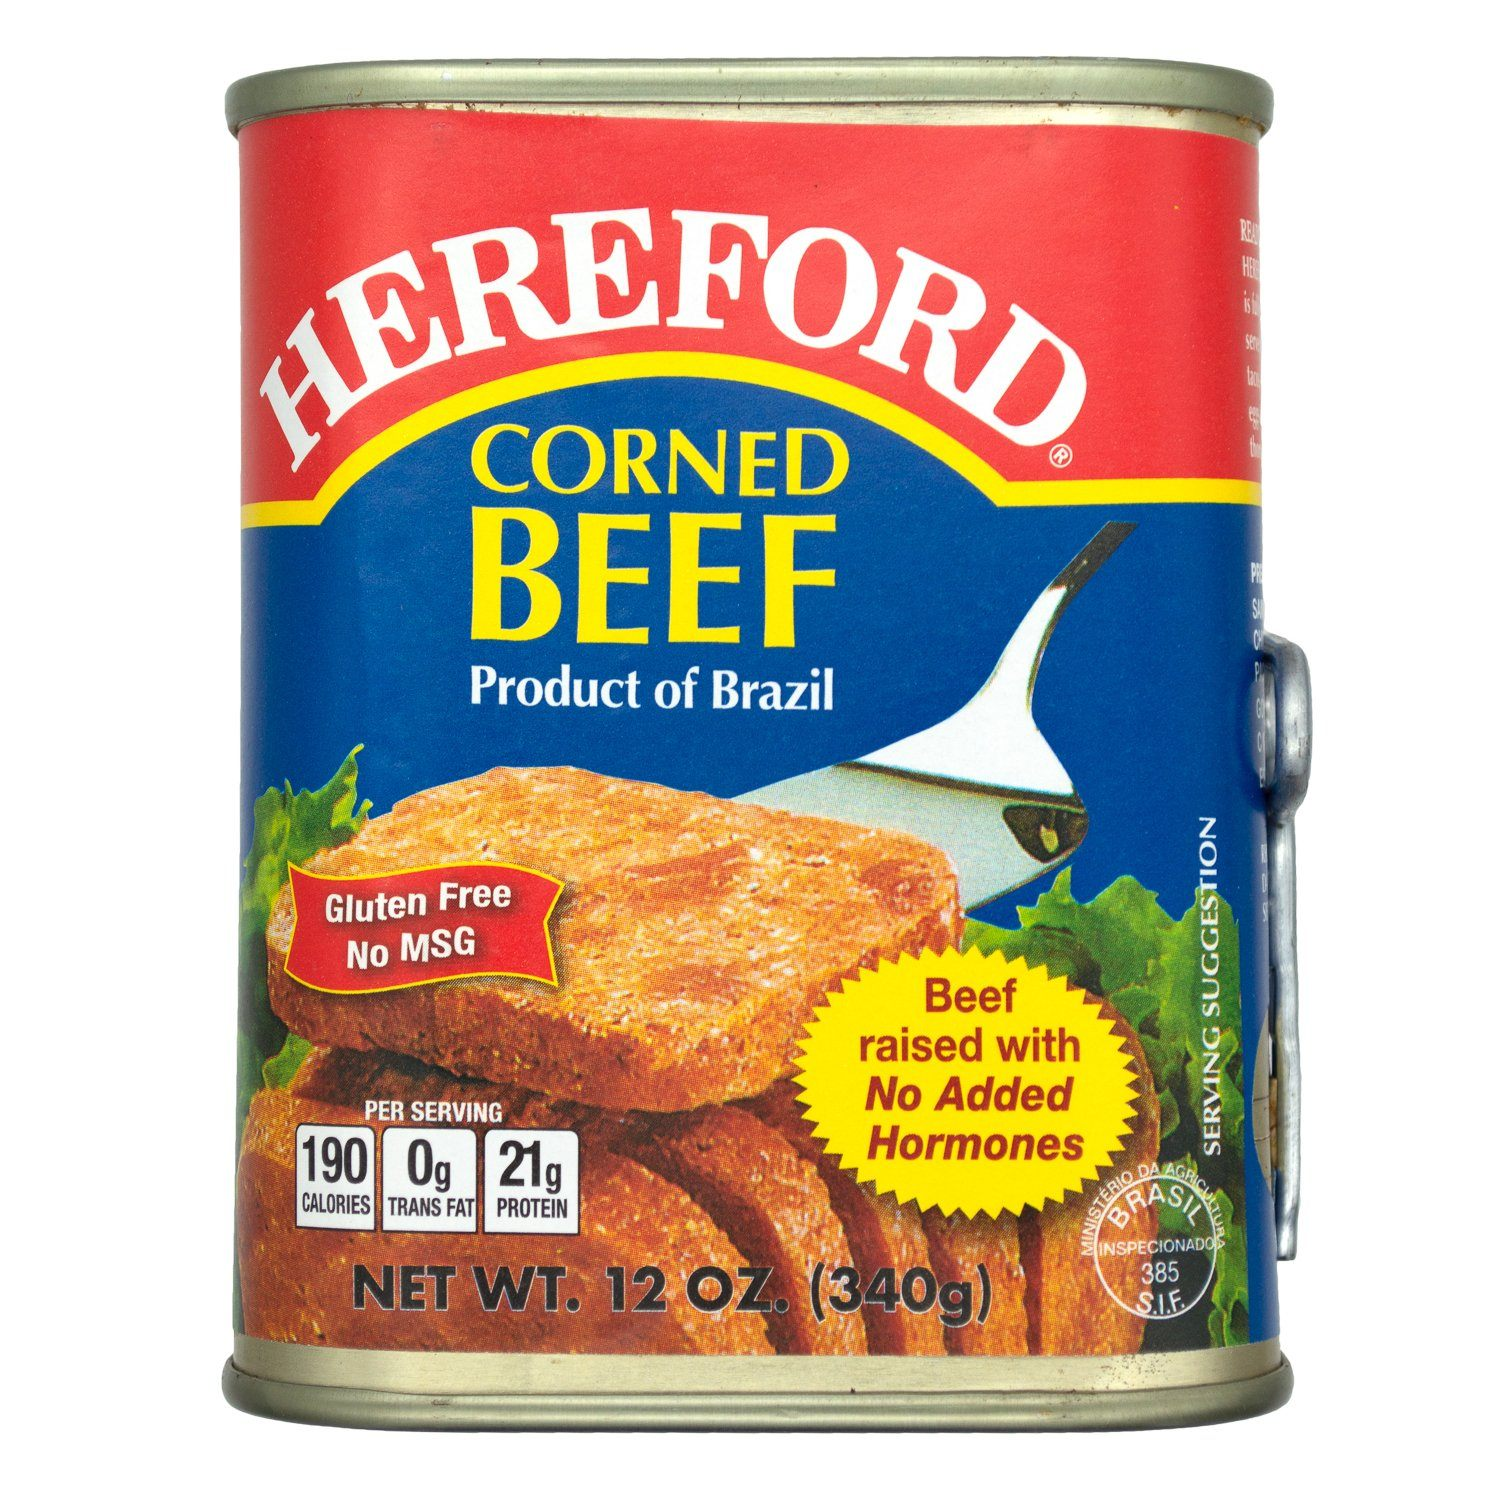 Hereford Corned Beef Hereford